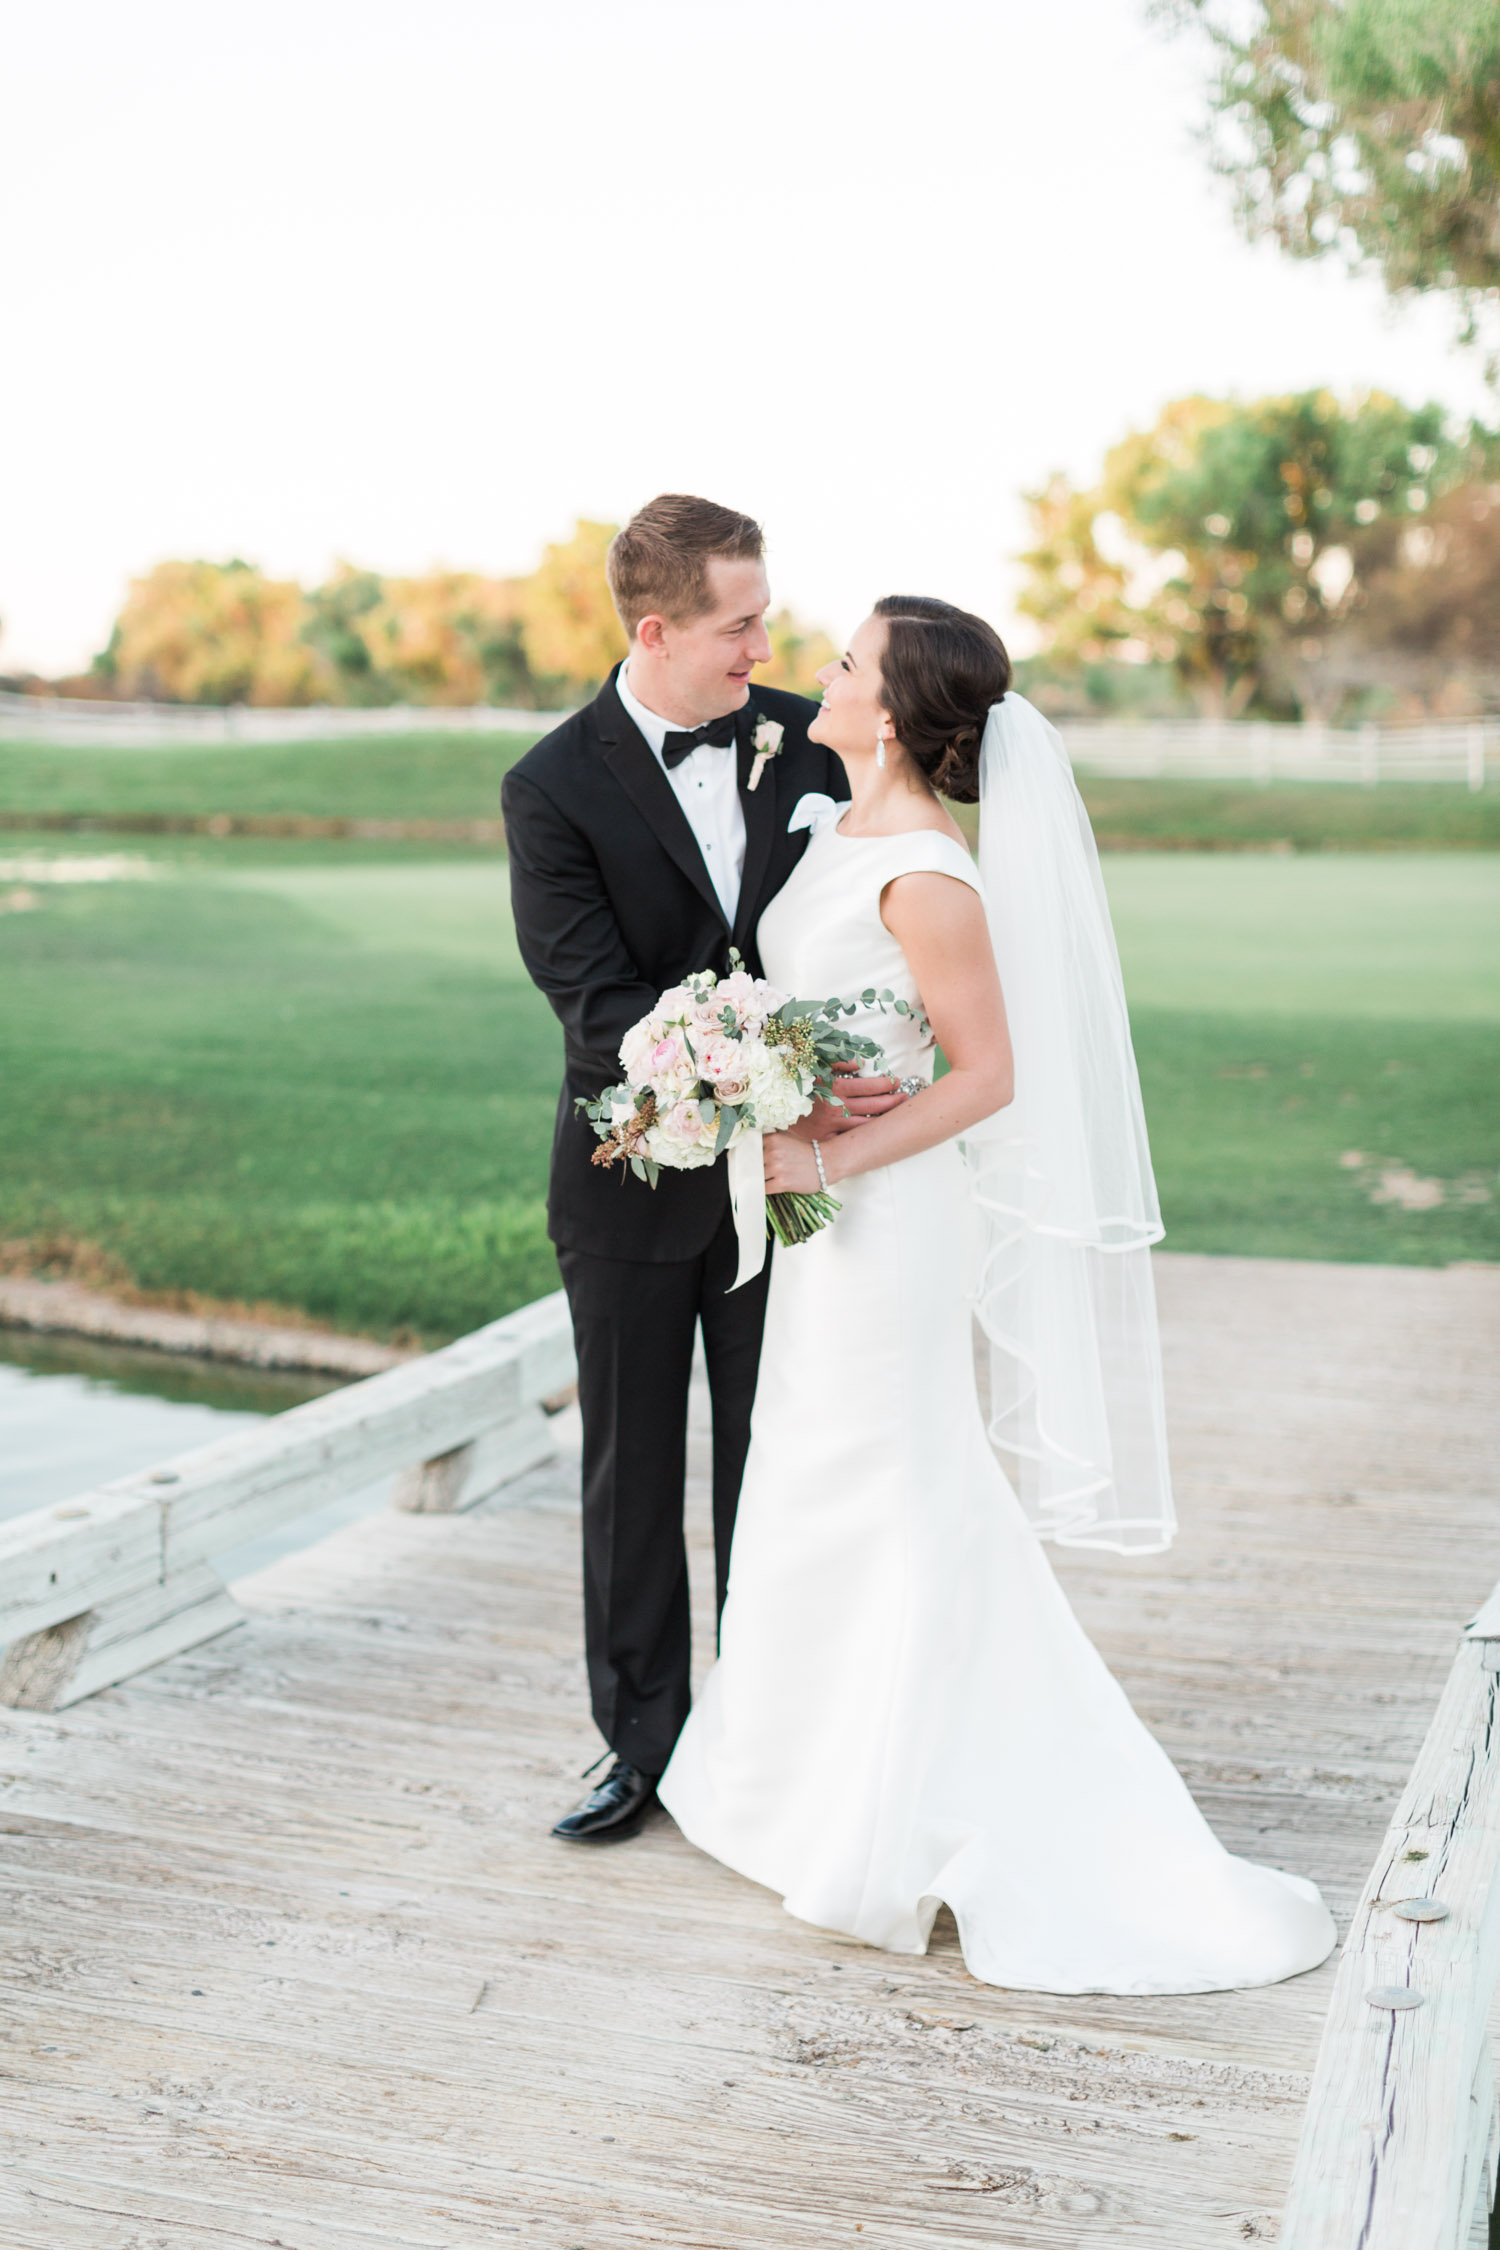 Tubac Golf Resort Wedding capture by Betsy & John